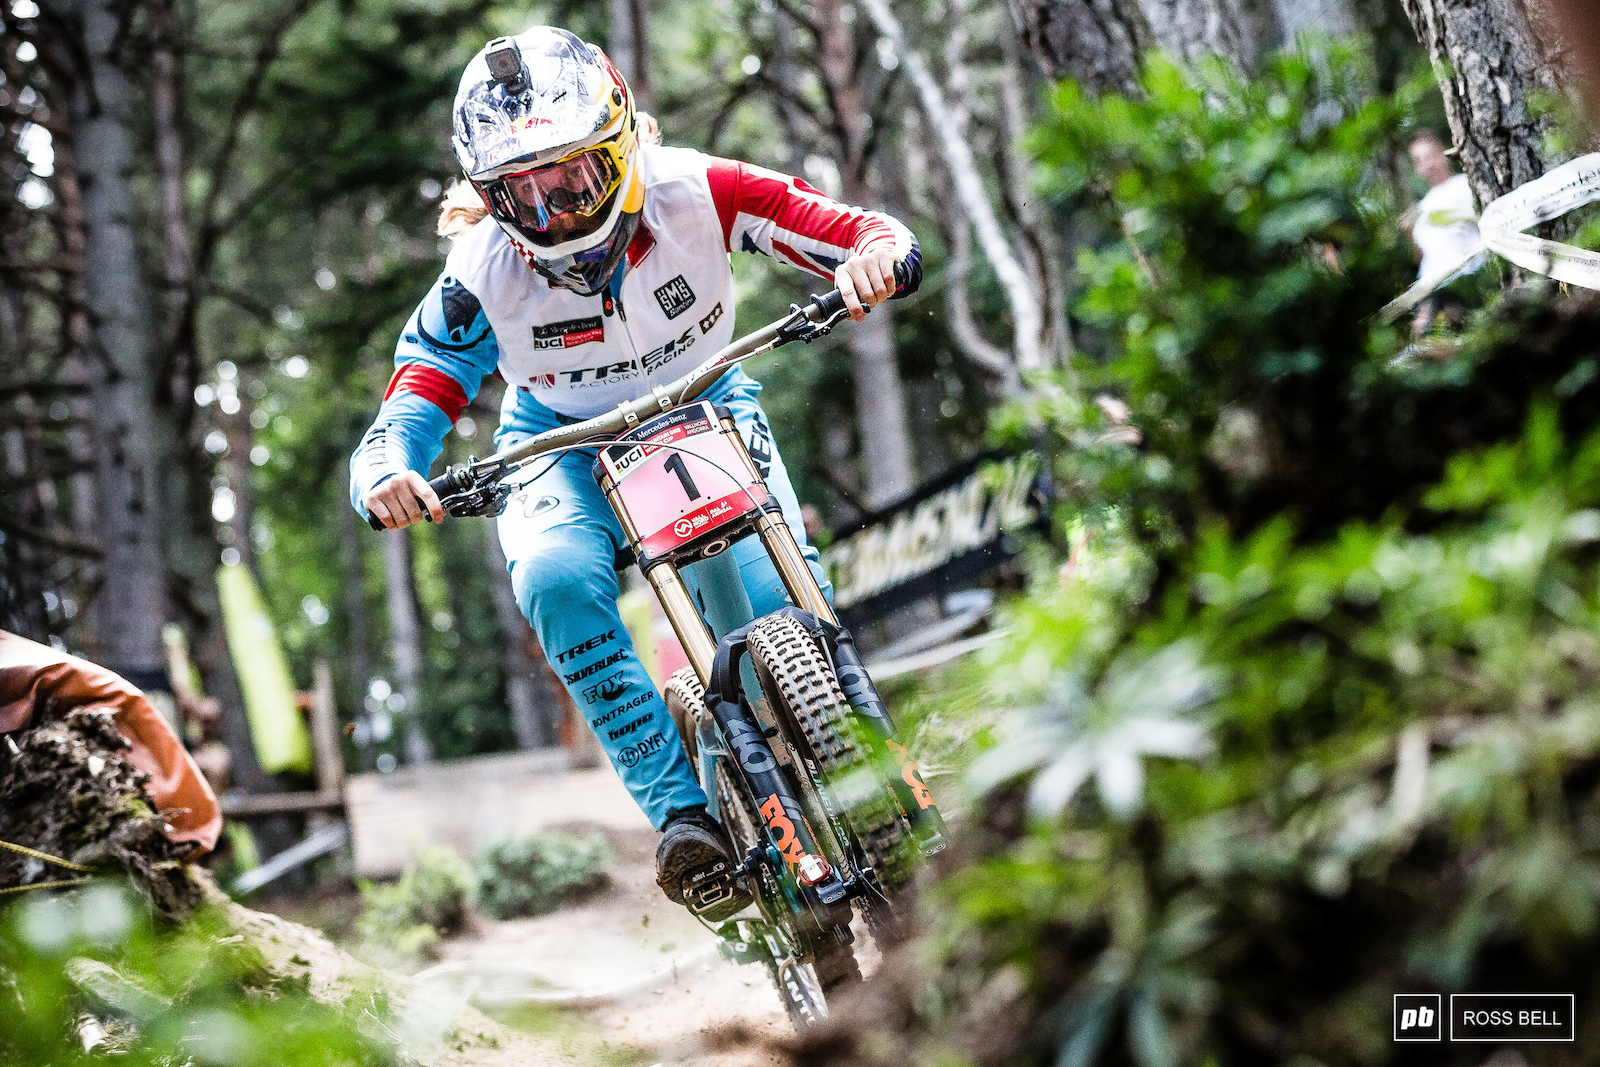 Utter domination. Rachel Atherton was in her own class today... Can anyone get close to her tomorrow?